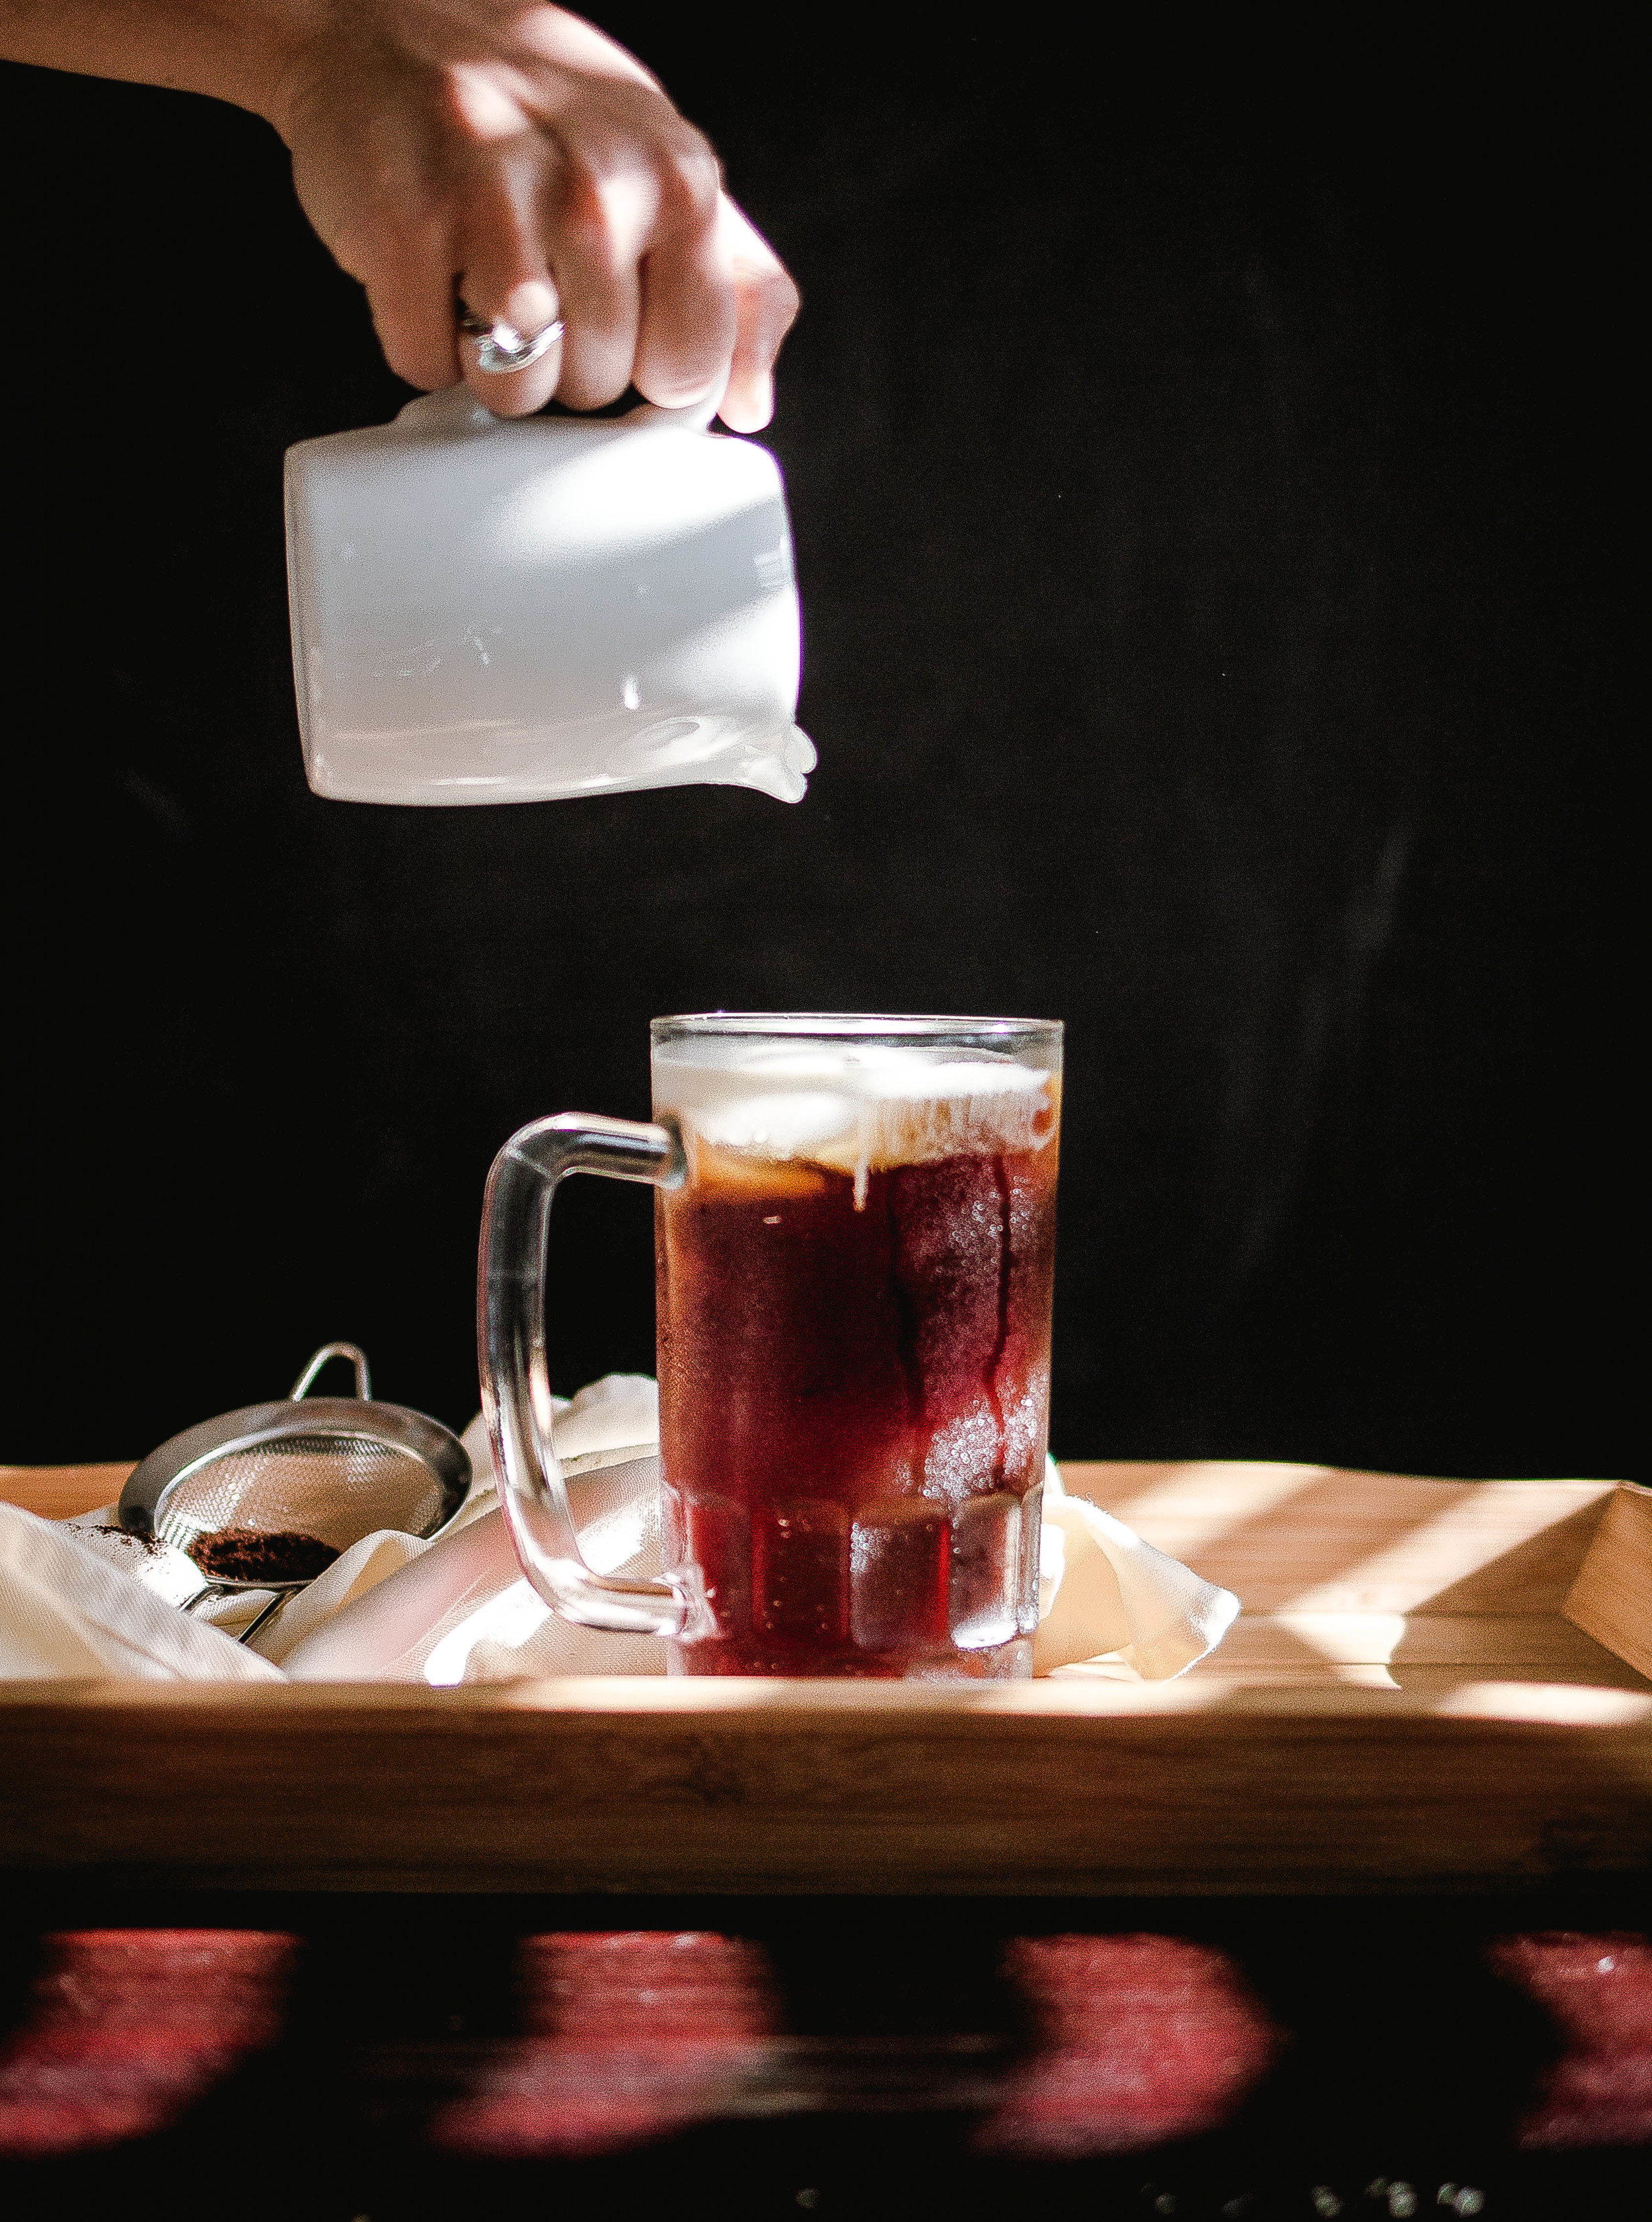 Recipe for Sea salt cream iced coffee like 85 degrees-Taiwanese style coffee pouring shot | by fit for the soul